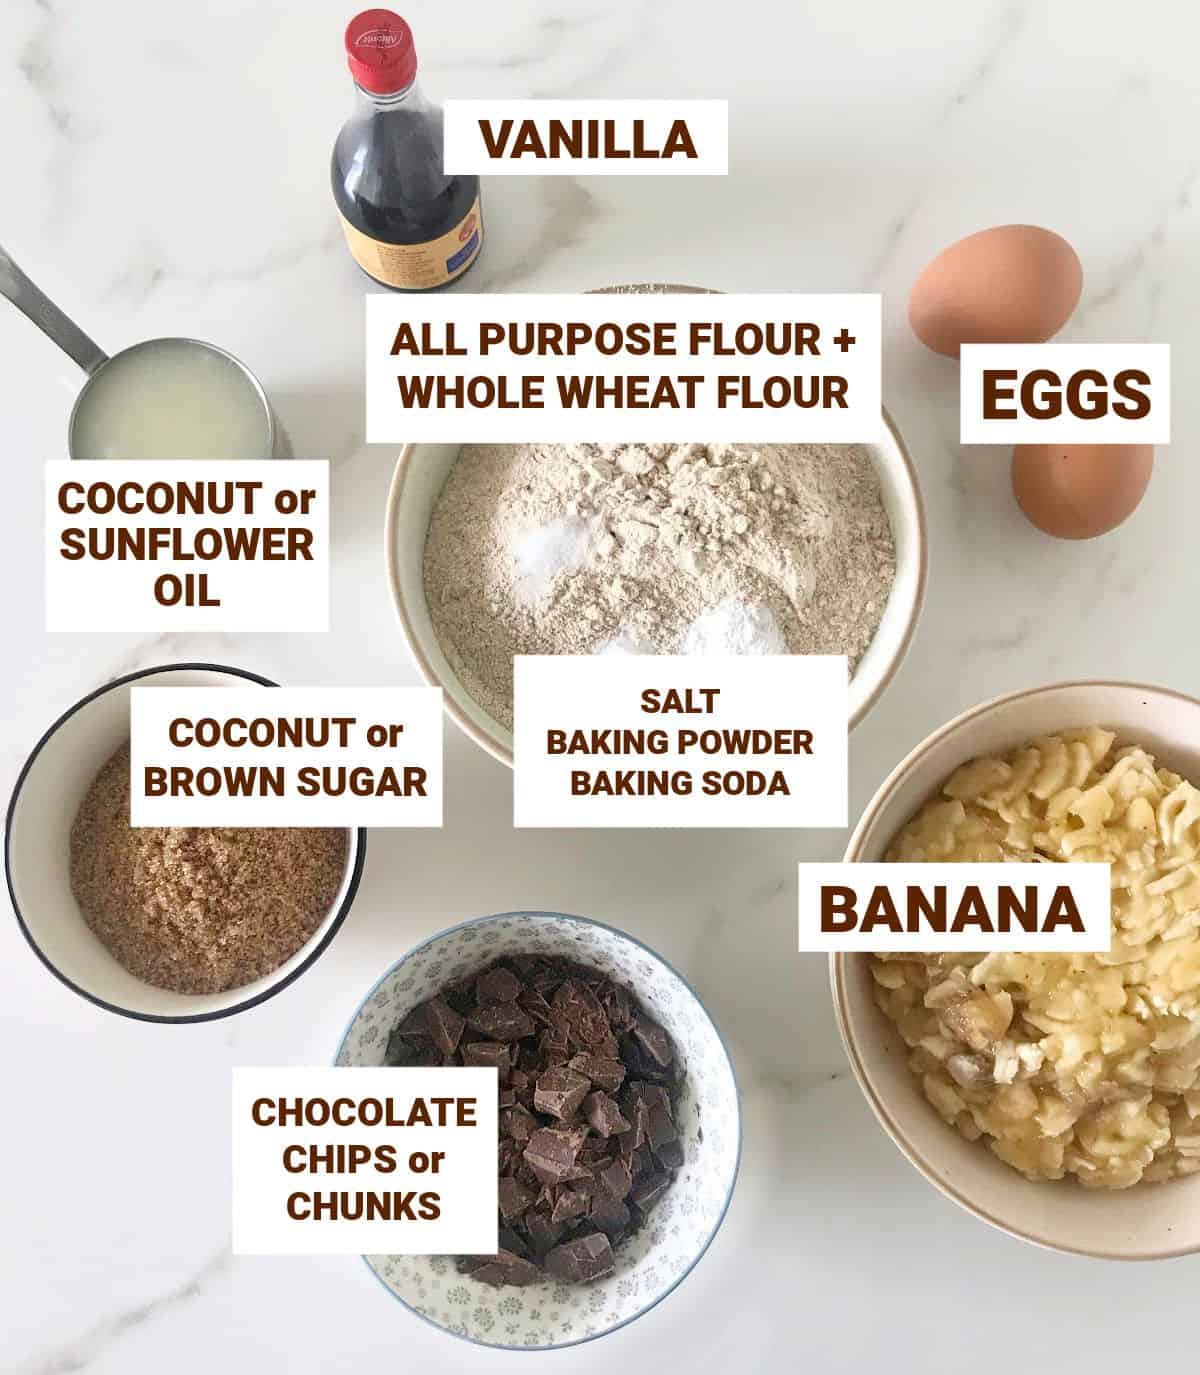 Banana chocolate bread ingredients in bowls on white surface, including eggs, vanilla and chocolate chunks